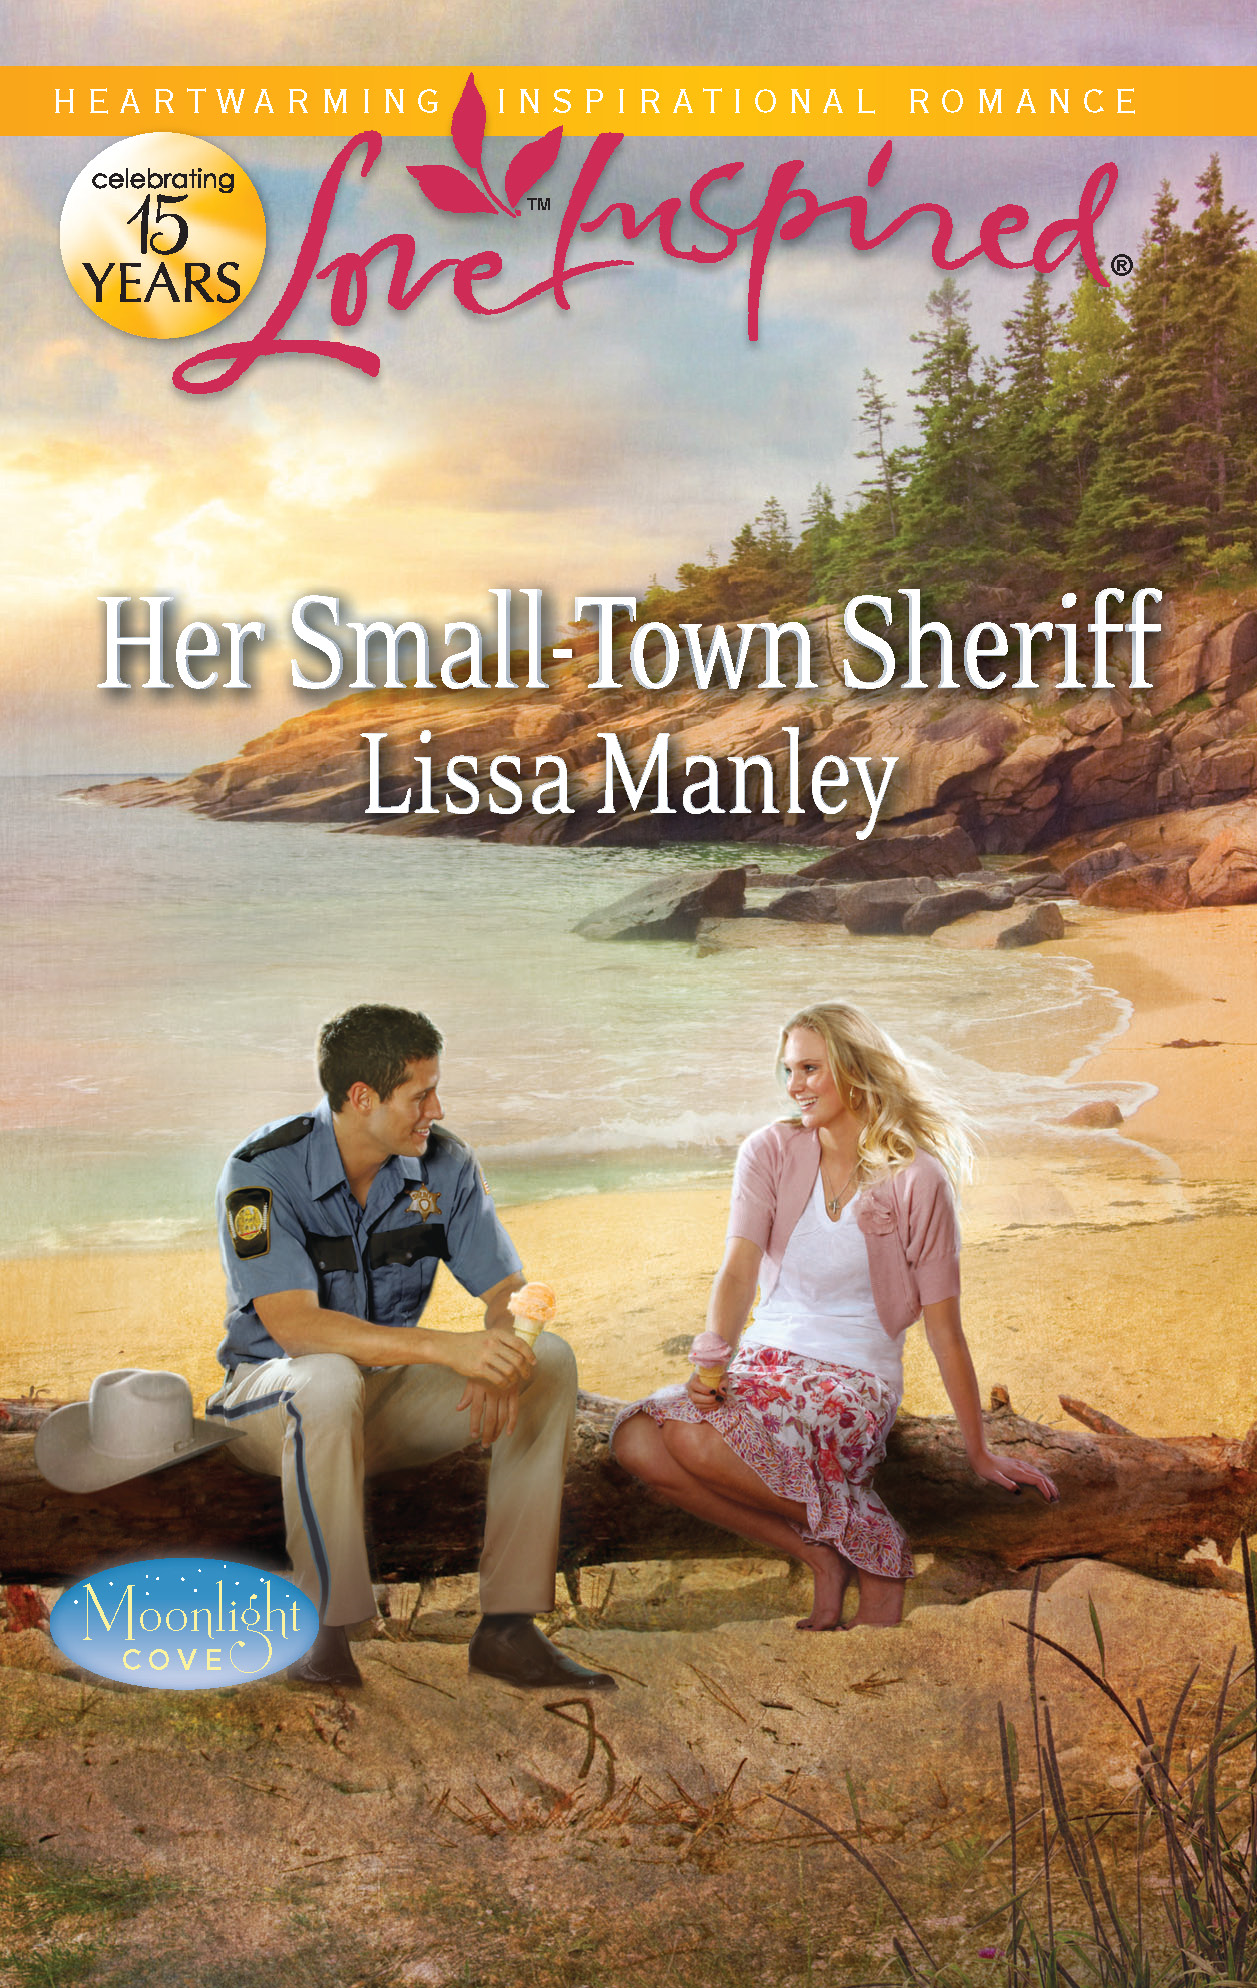 Her Small-Town Sheriff By: Lissa Manley